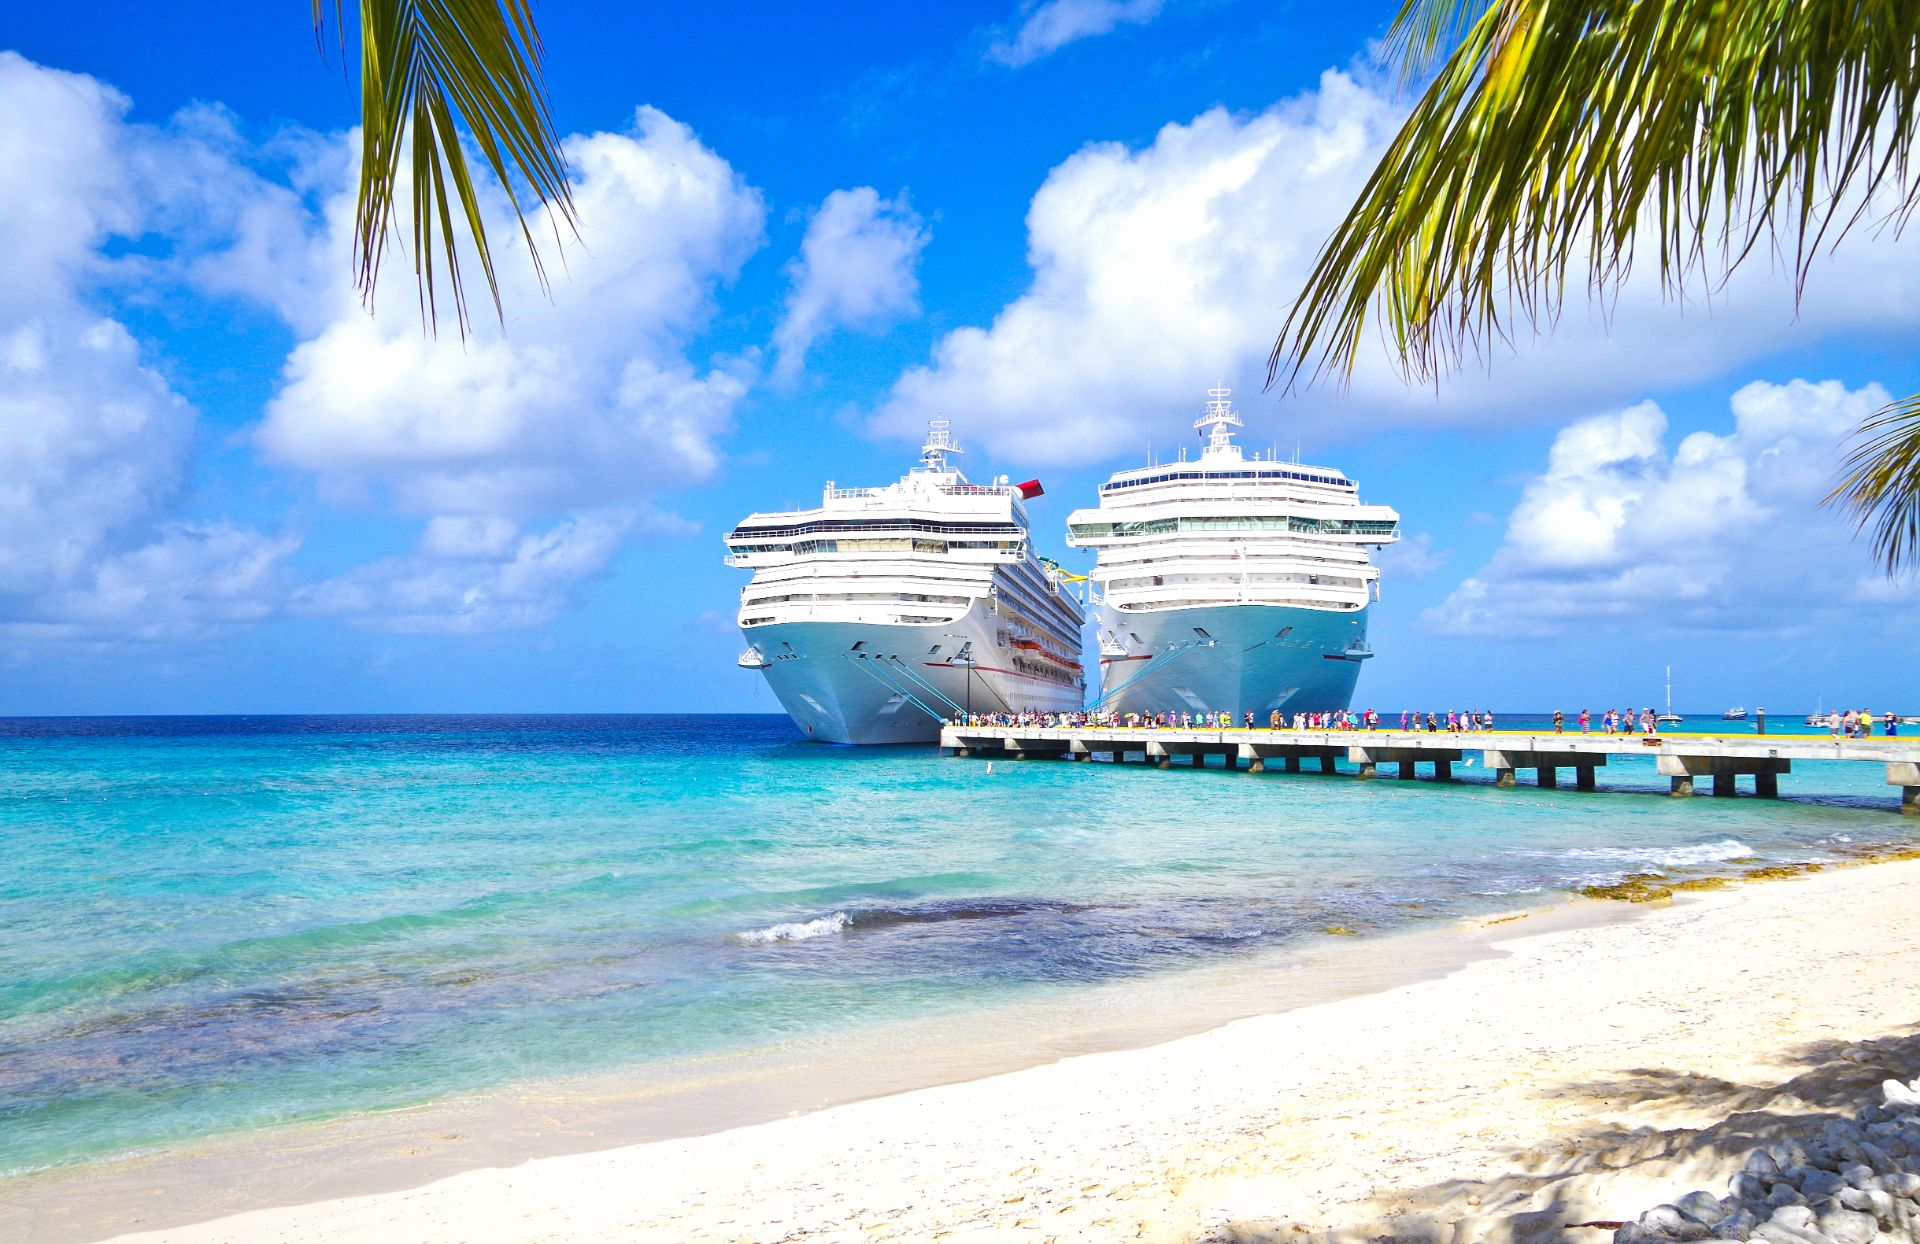 10 Surprising Facts About Cruise Ships